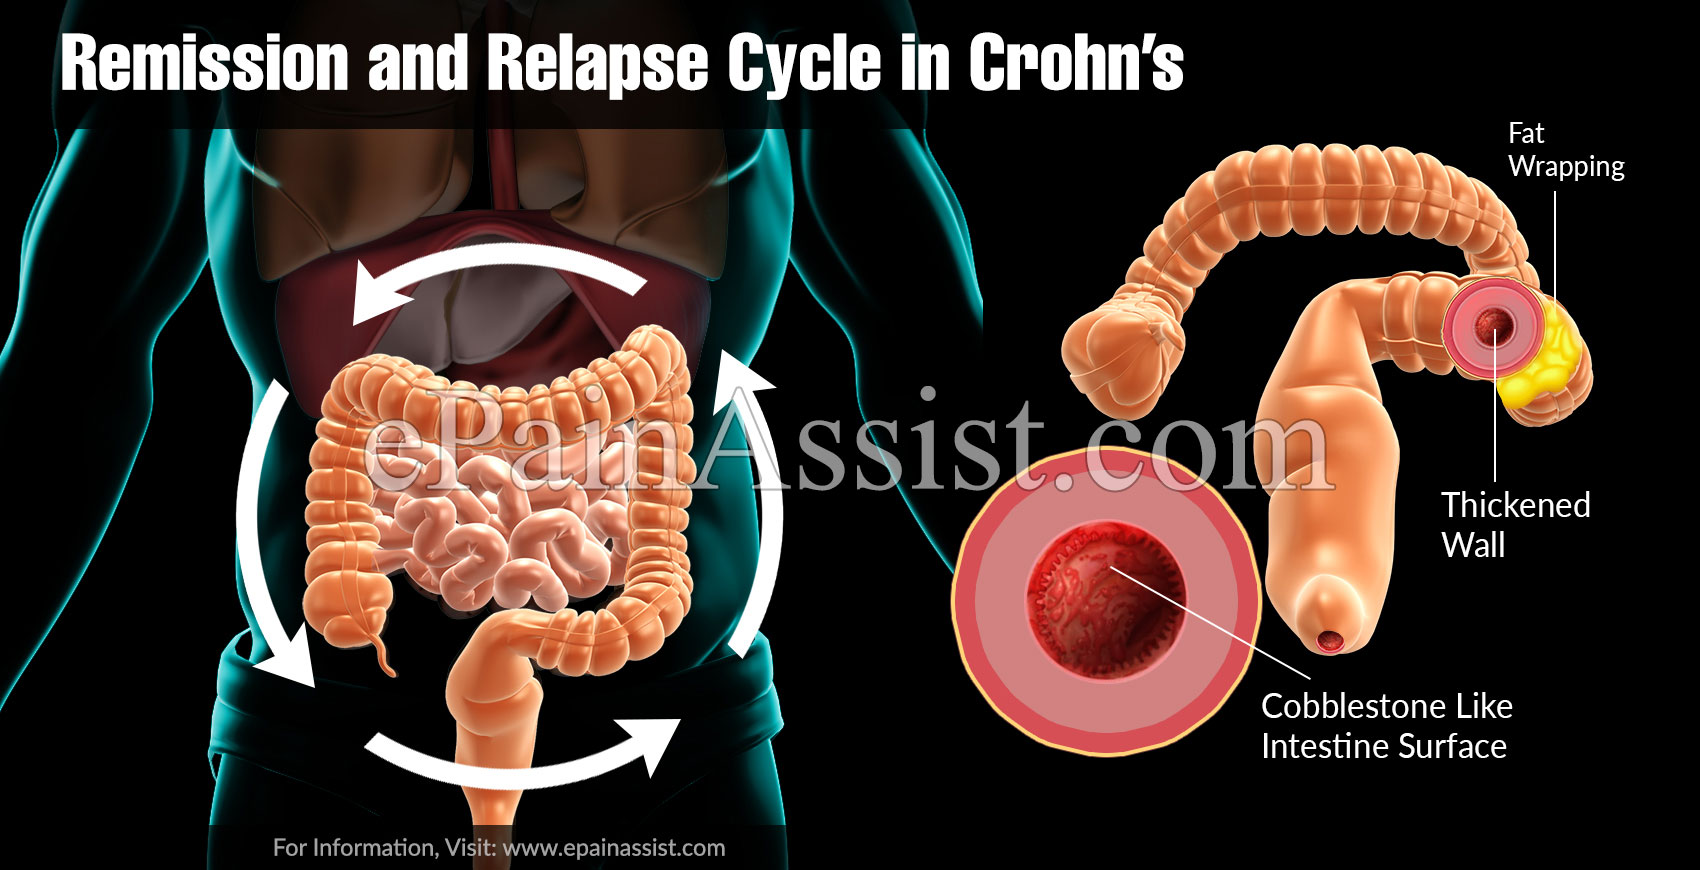 Remission and Relapse Cycle in Crohn's